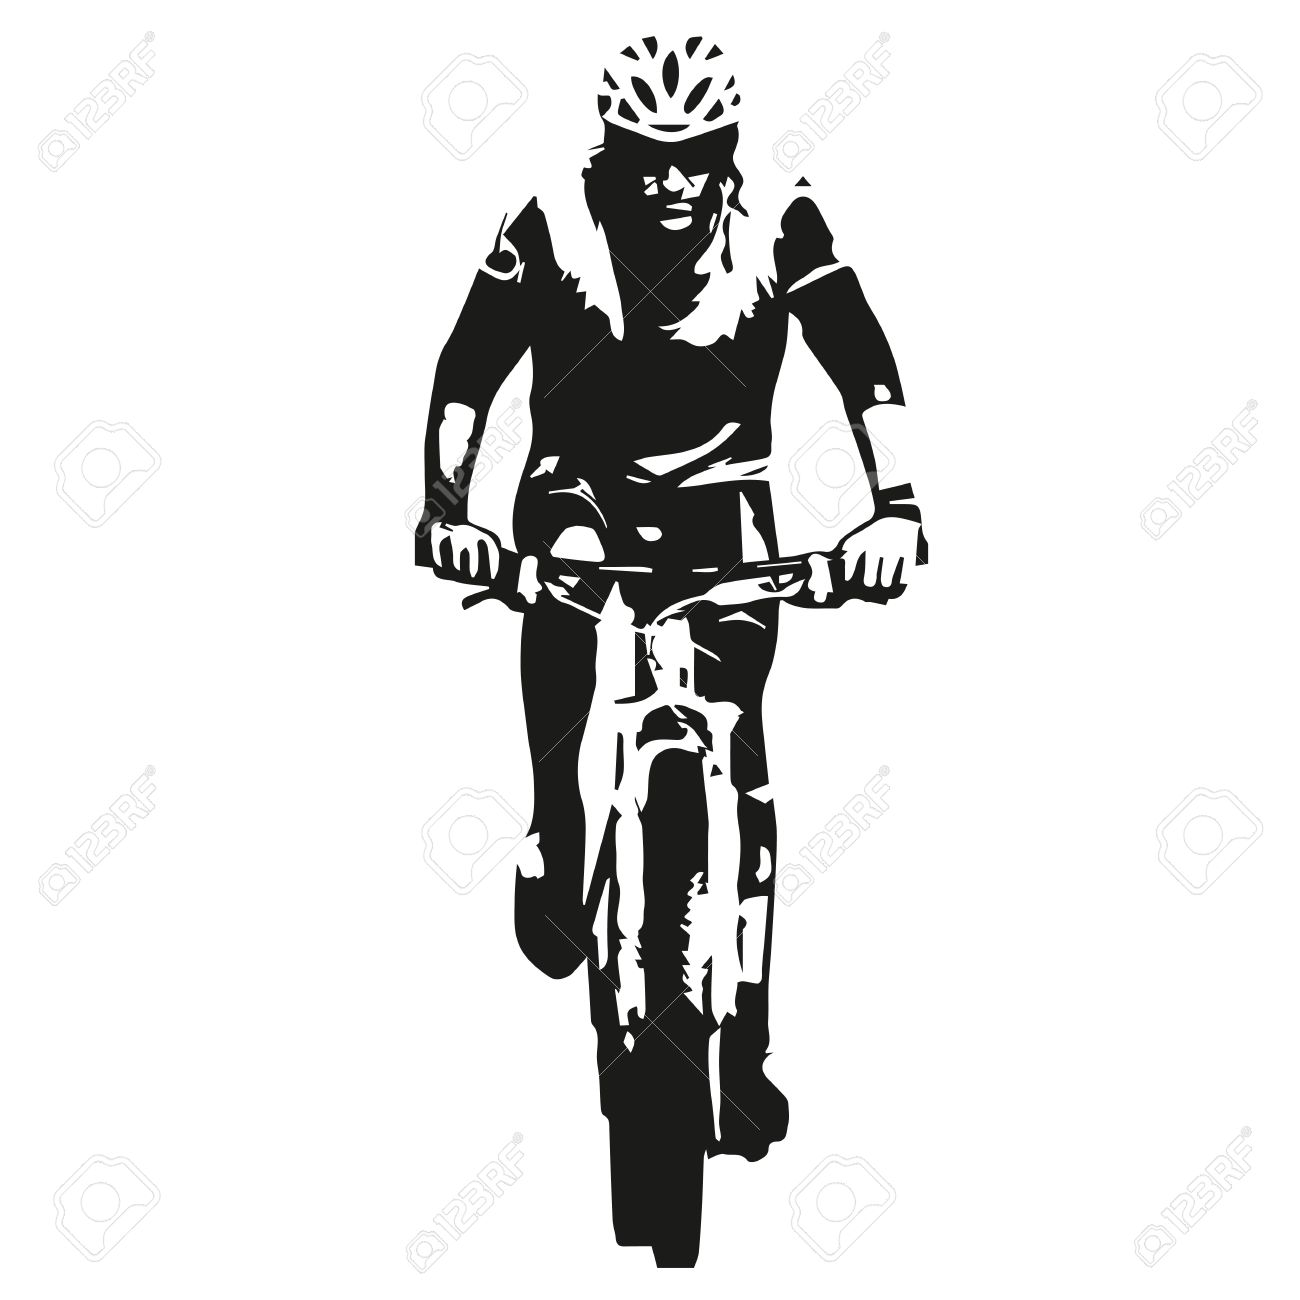 Mountain Biker Abstract Vector Bicycle Rider Silhouette Royalty